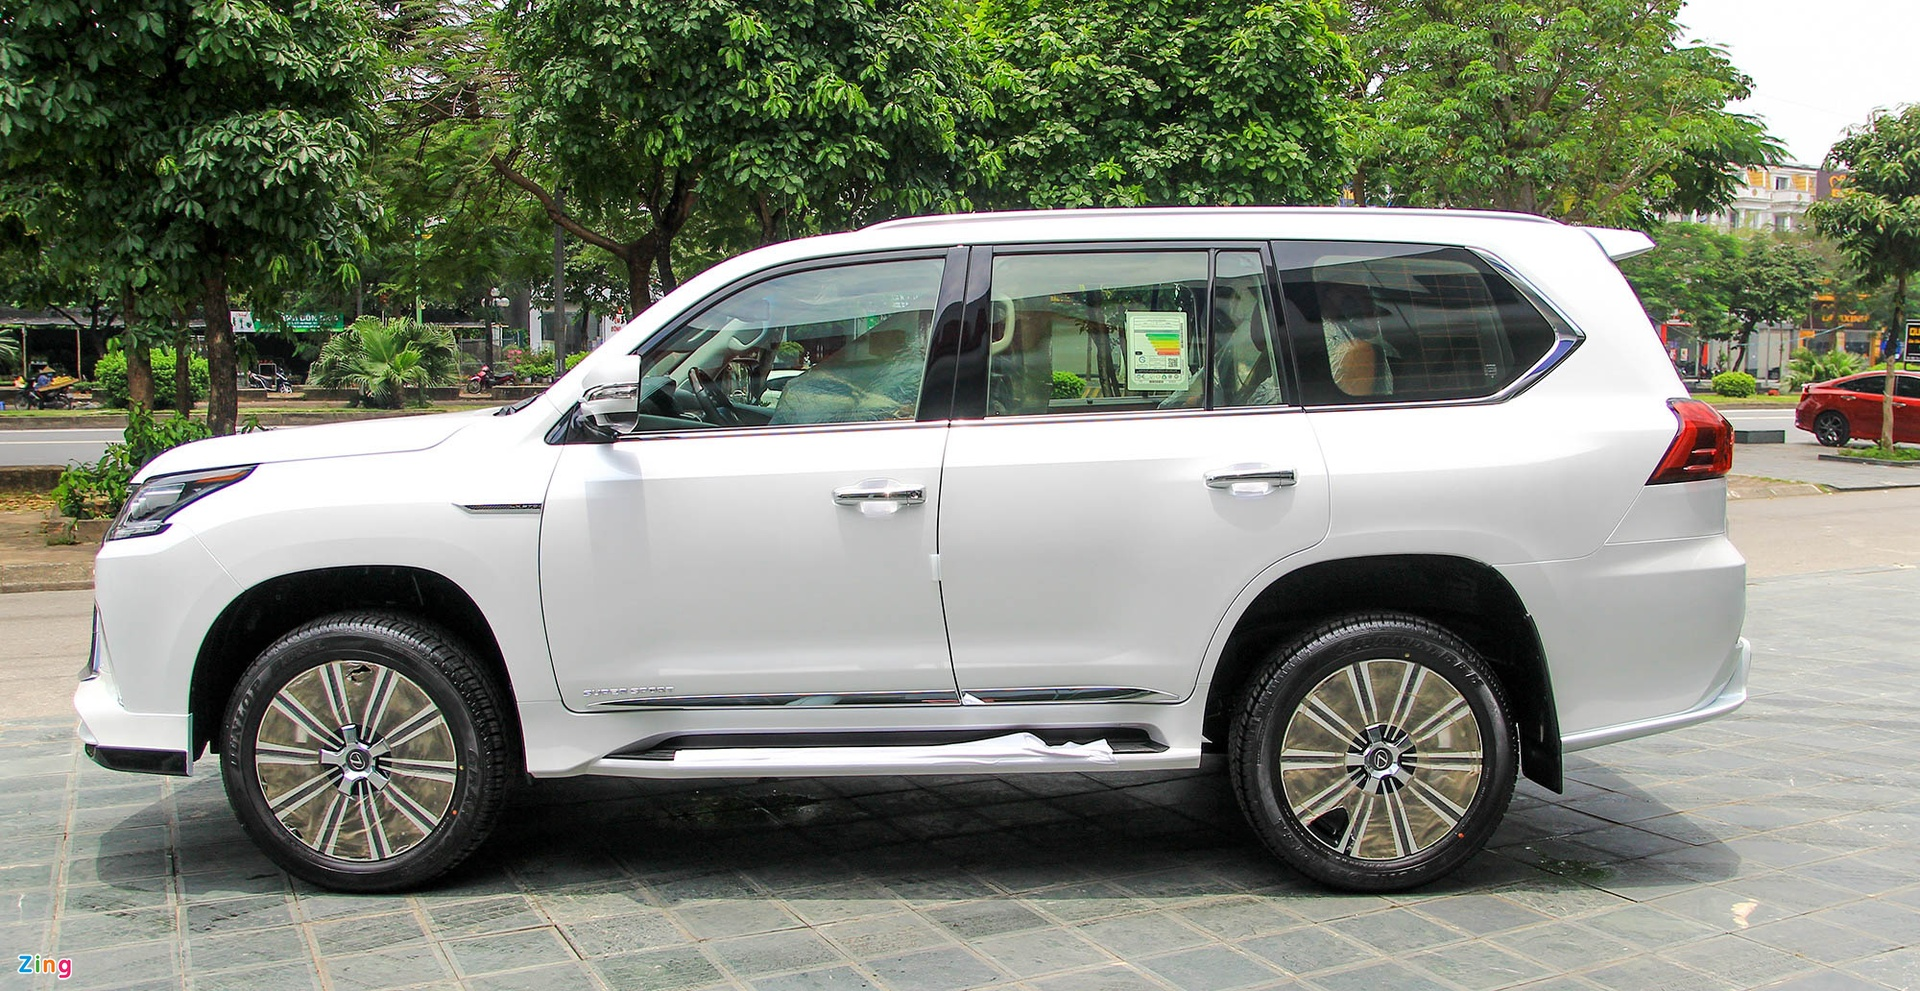 Lexus LX570 Supersport do MBS anh 2